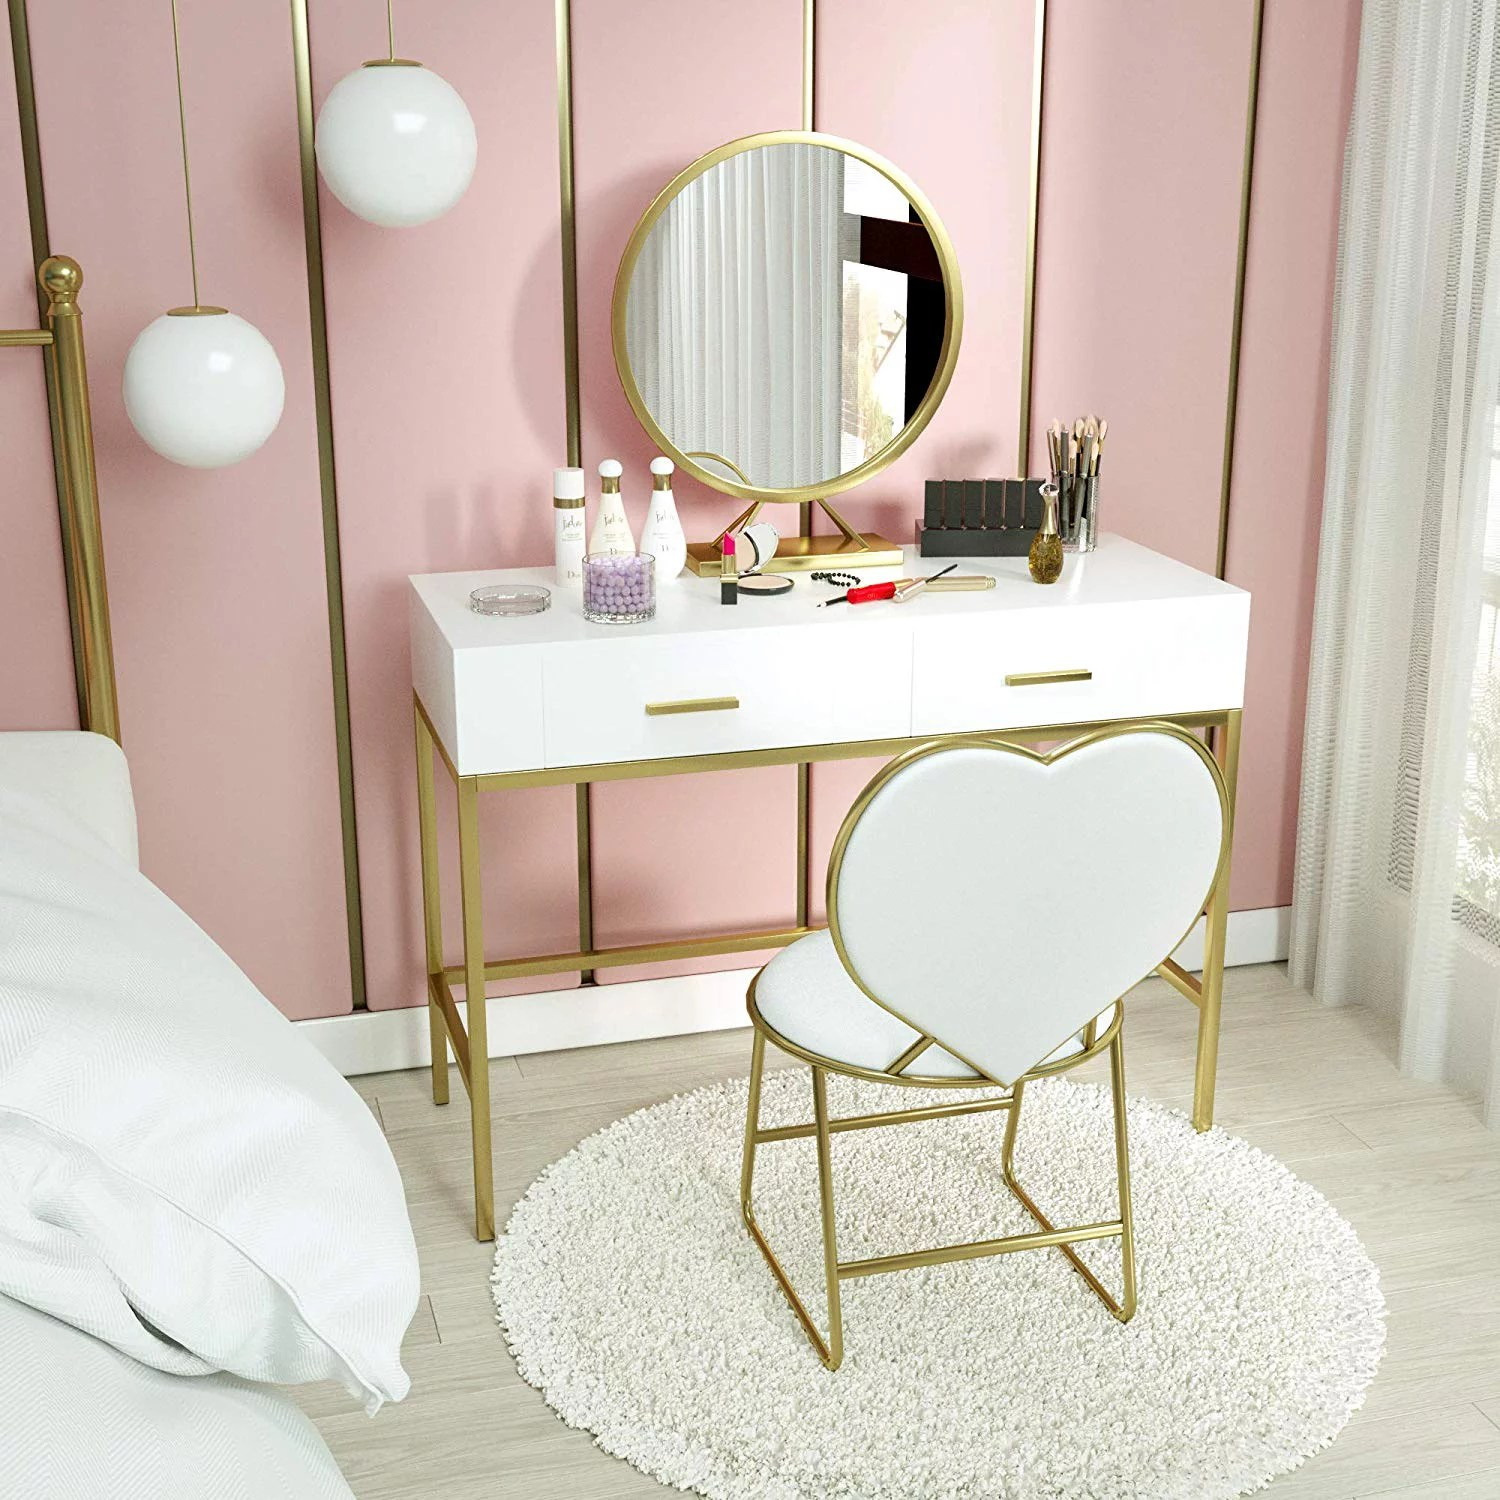 mecor vanity table set with mirror wood makeup vanity with gold metal legs heart shape cushioned stool girls women bedroom furniture set makeup table